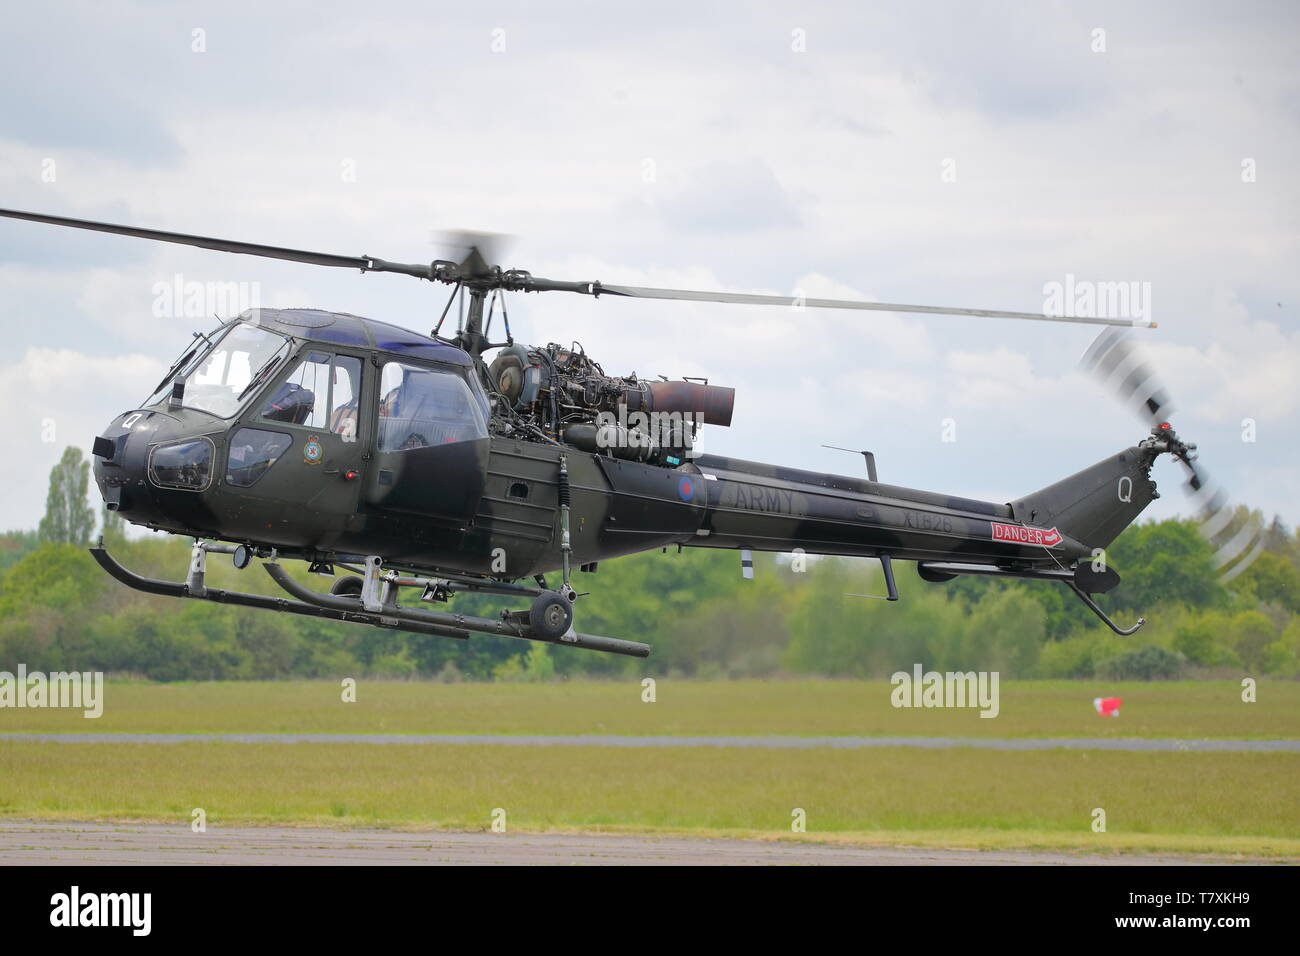 Westland Scout XT626 helicopter at Abingdon Air & Country Show, Abingdon, UK - Stock Image